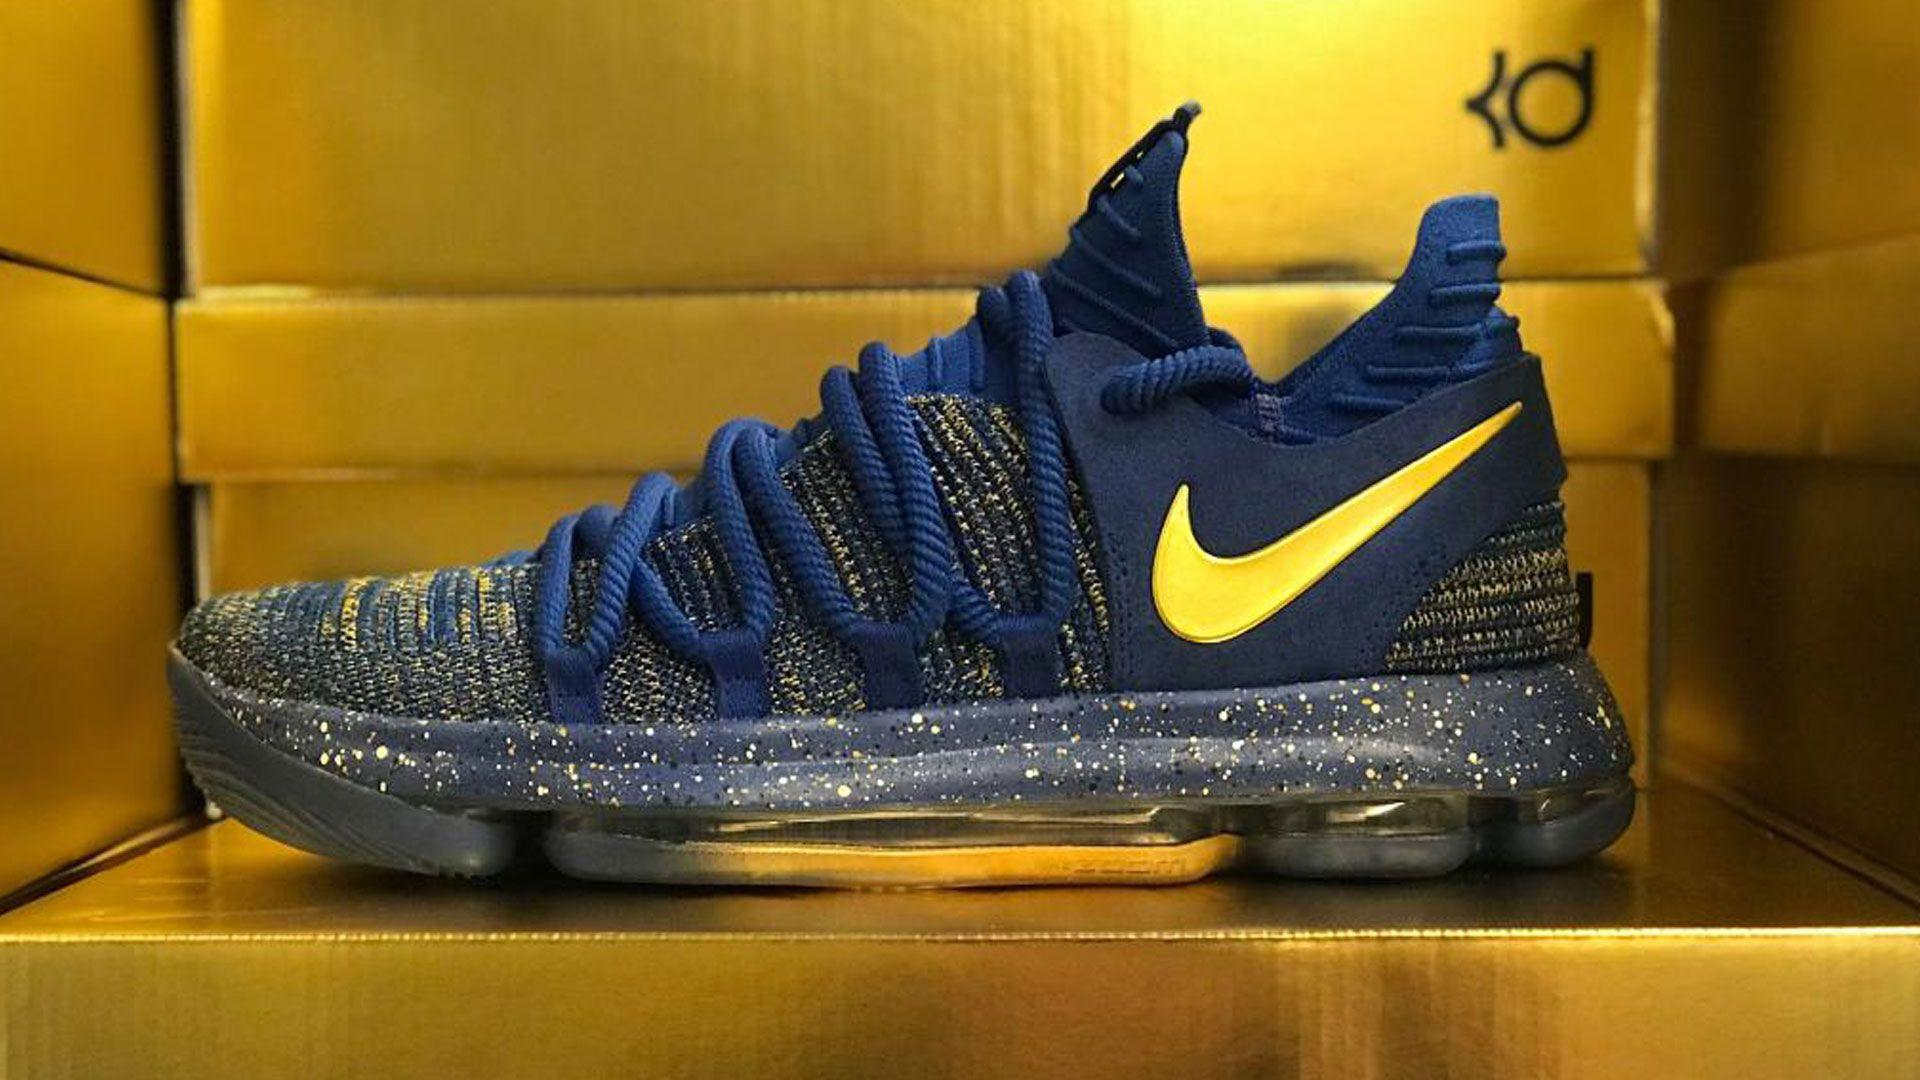 kevin durant shoes - HD1920×1080